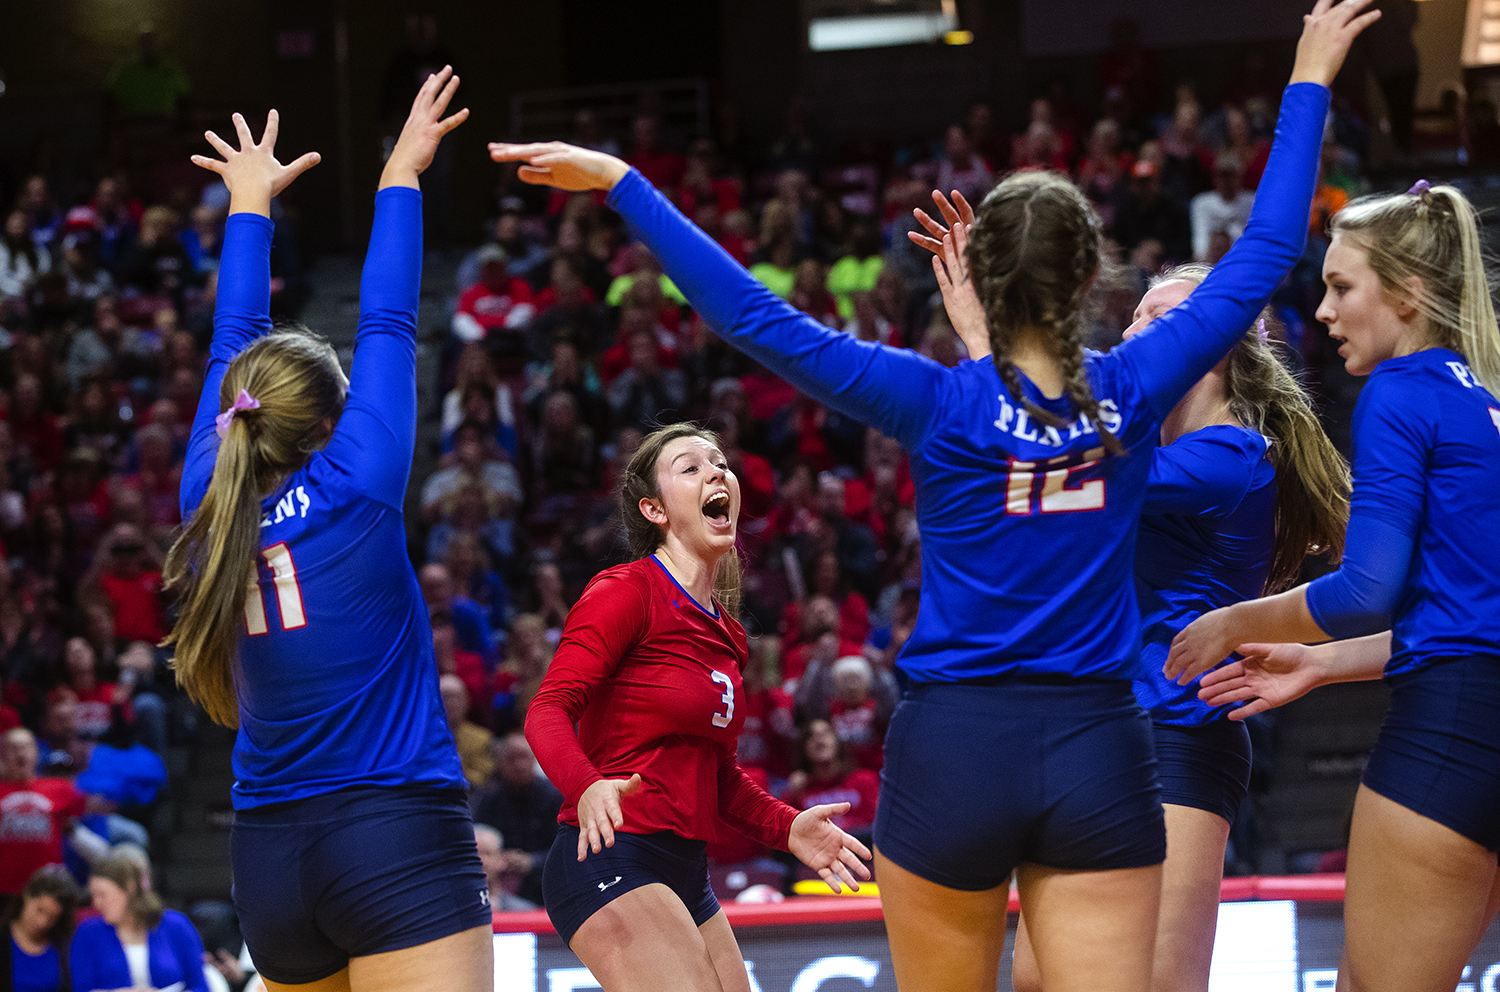 Pleasant Plains' MacKenzie Houser and the Cardinals celebrate a point against Galena during the IHSA Class 2A Volleyball championship at Redbird Arena in Normal Saturday, Nov. 10, 2018. [Ted Schurter/The State Journal-Register]